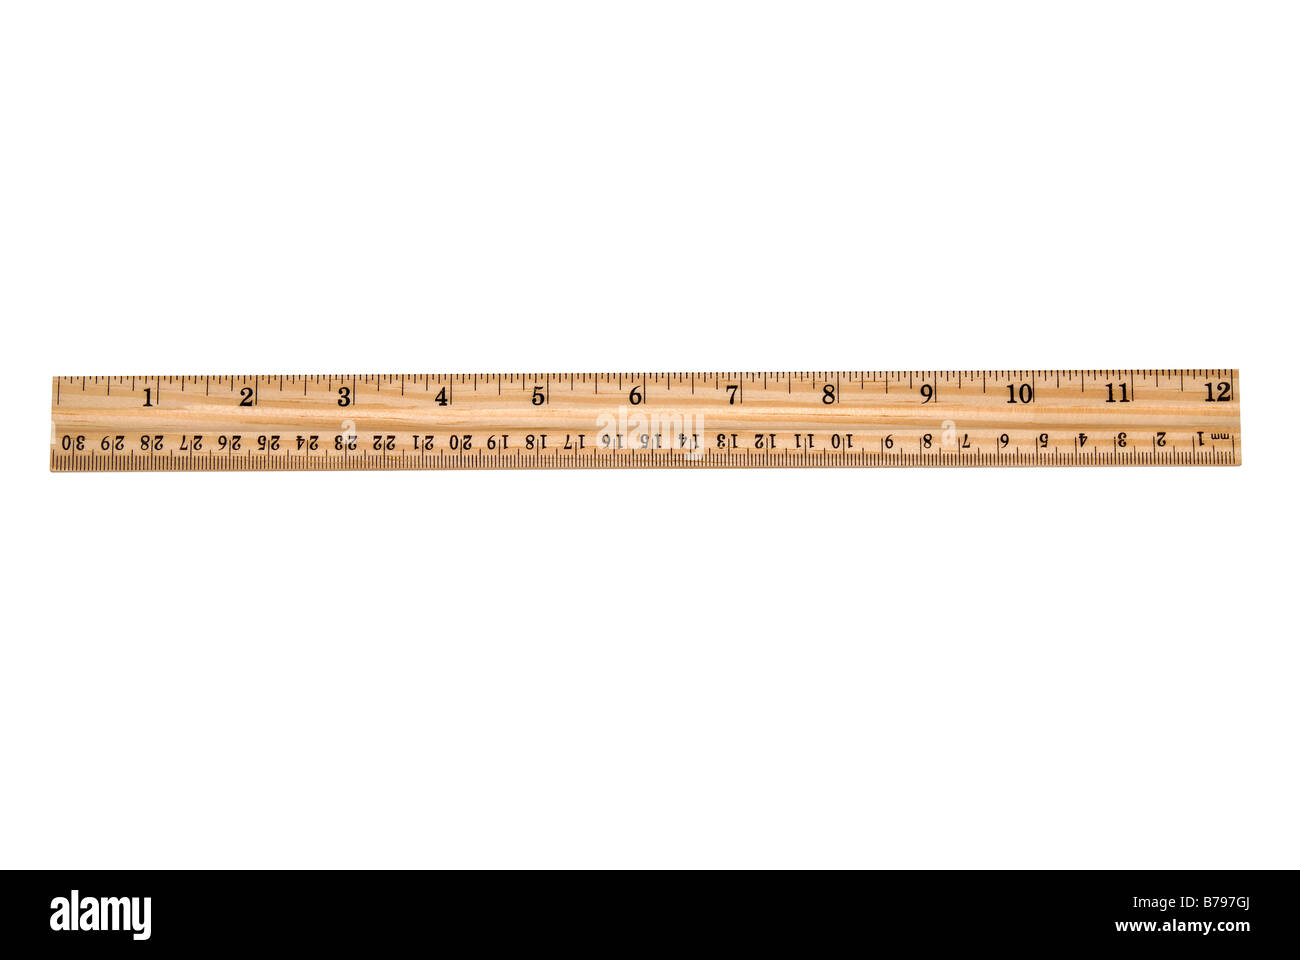 An brand new wooden ruler isolated on white Very clean and crisp - Stock Image